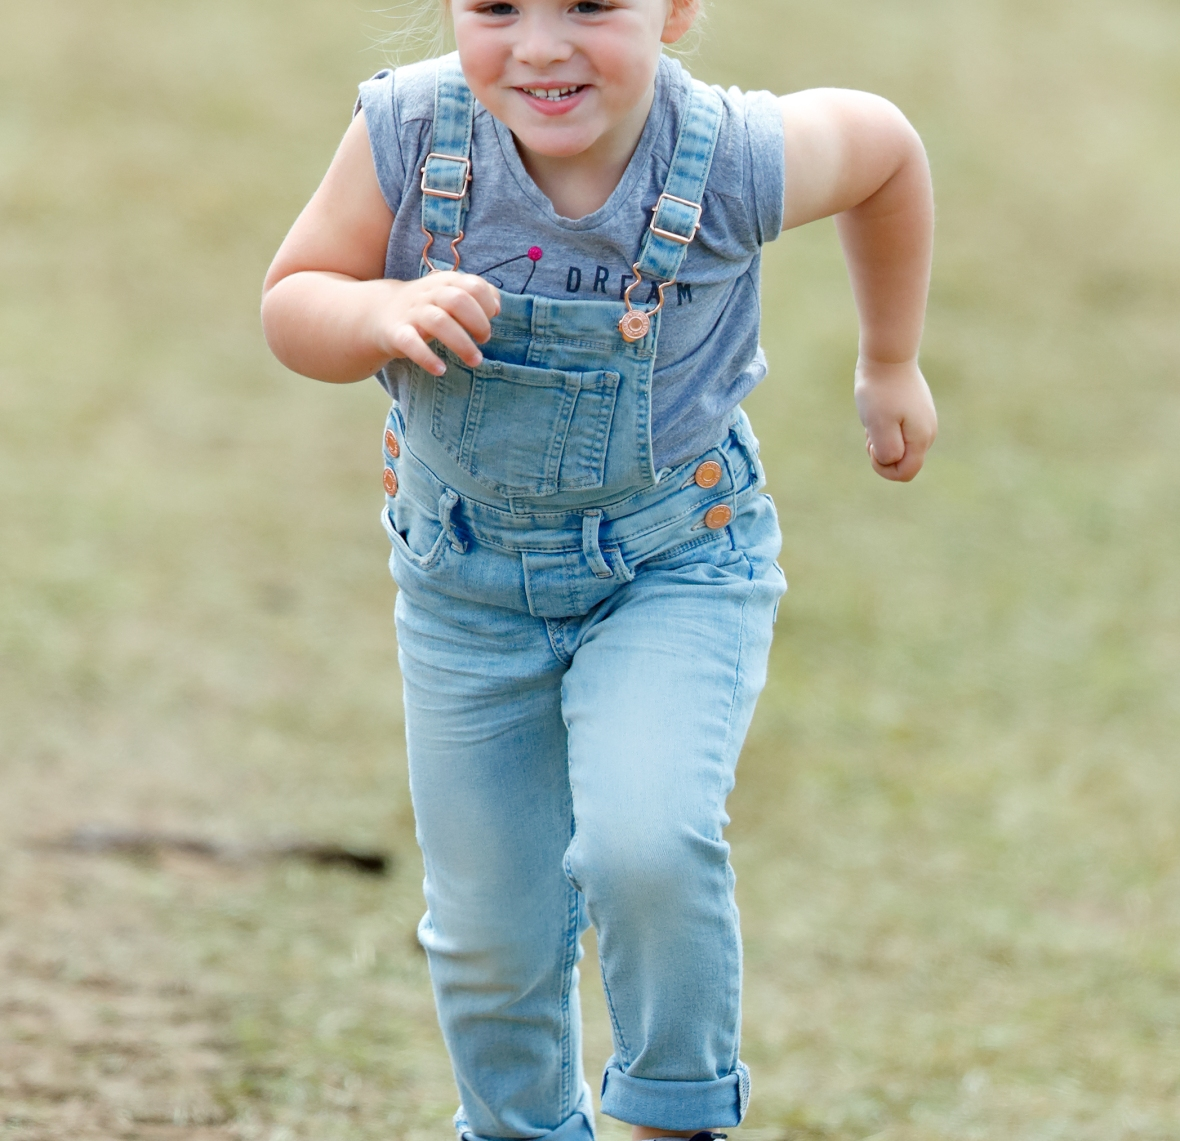 mia tindall getty images